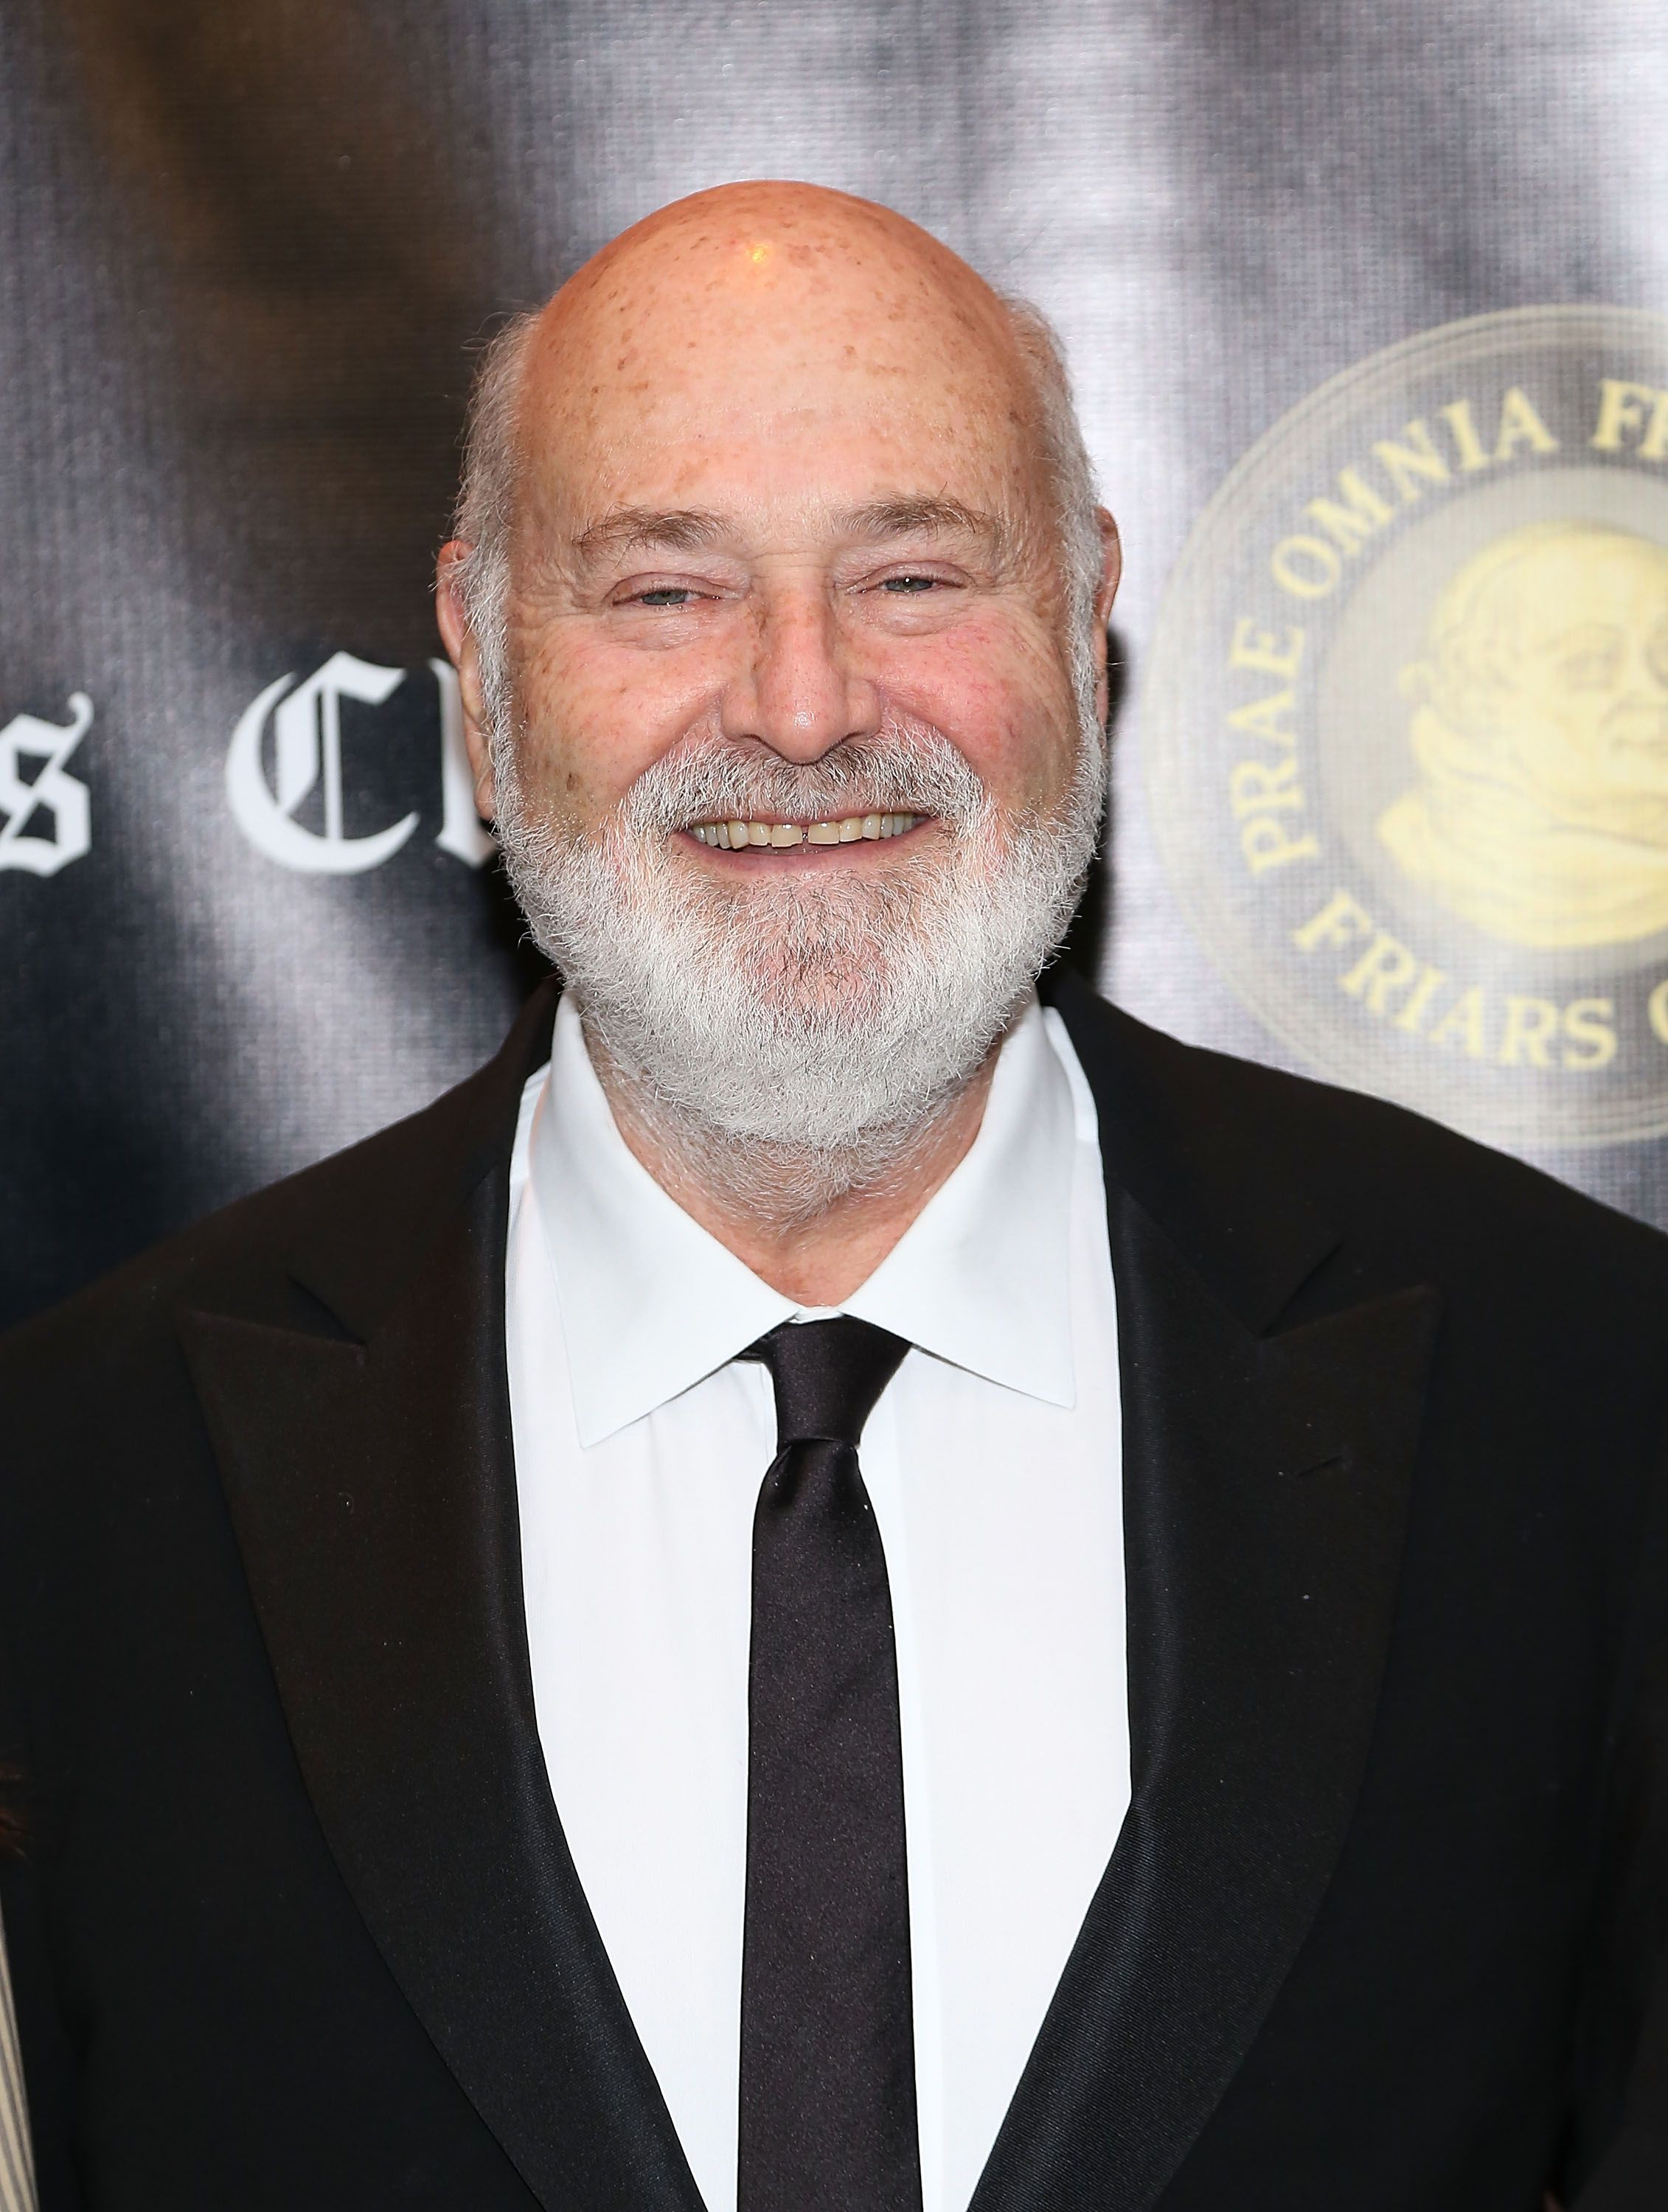 Rob Reiner at the Friar's Club Honors Billy Crystal with their Entertainment Icon Award at The Ziegfeld Ballroom on November 12, 2018 in New York City. | Photo: Getty Images